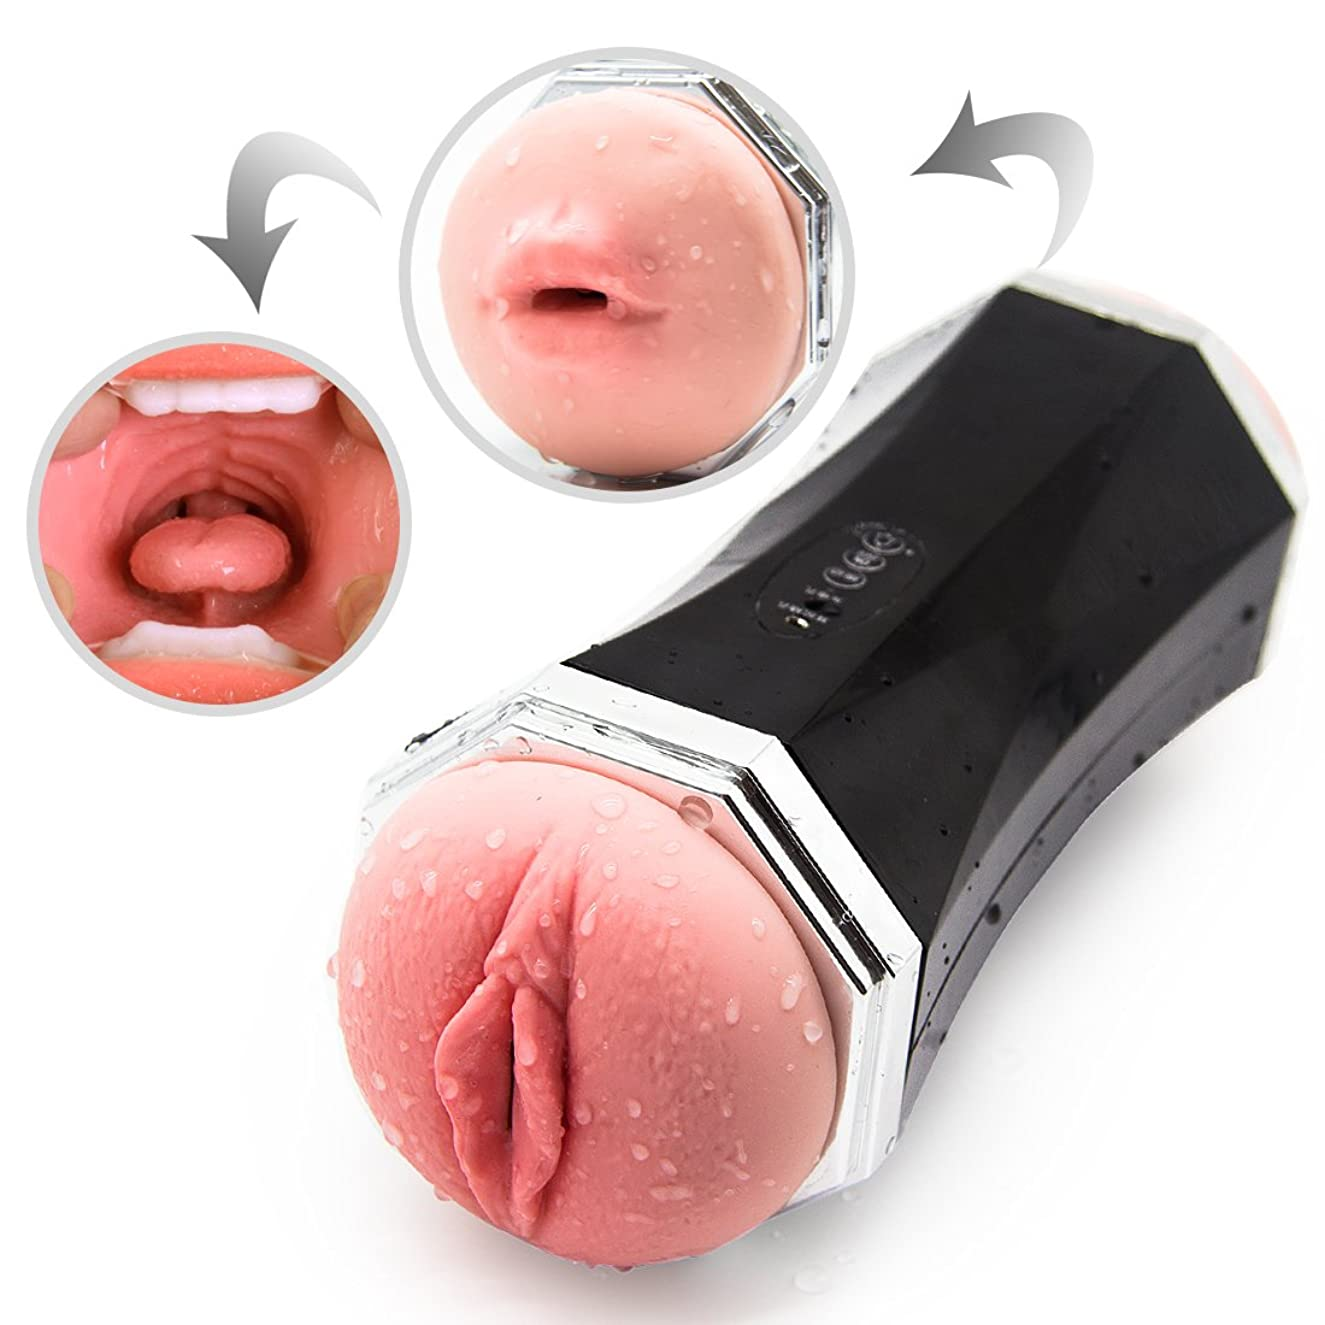 Male Mastùrbators Hands Free,Automatic Male M-às-türbat?r Cup USB Rechargeable Realistic and Mouth M-às-türbat?r Pockèt-P?ssy and Oral Sexin Toys for Men Tshirt